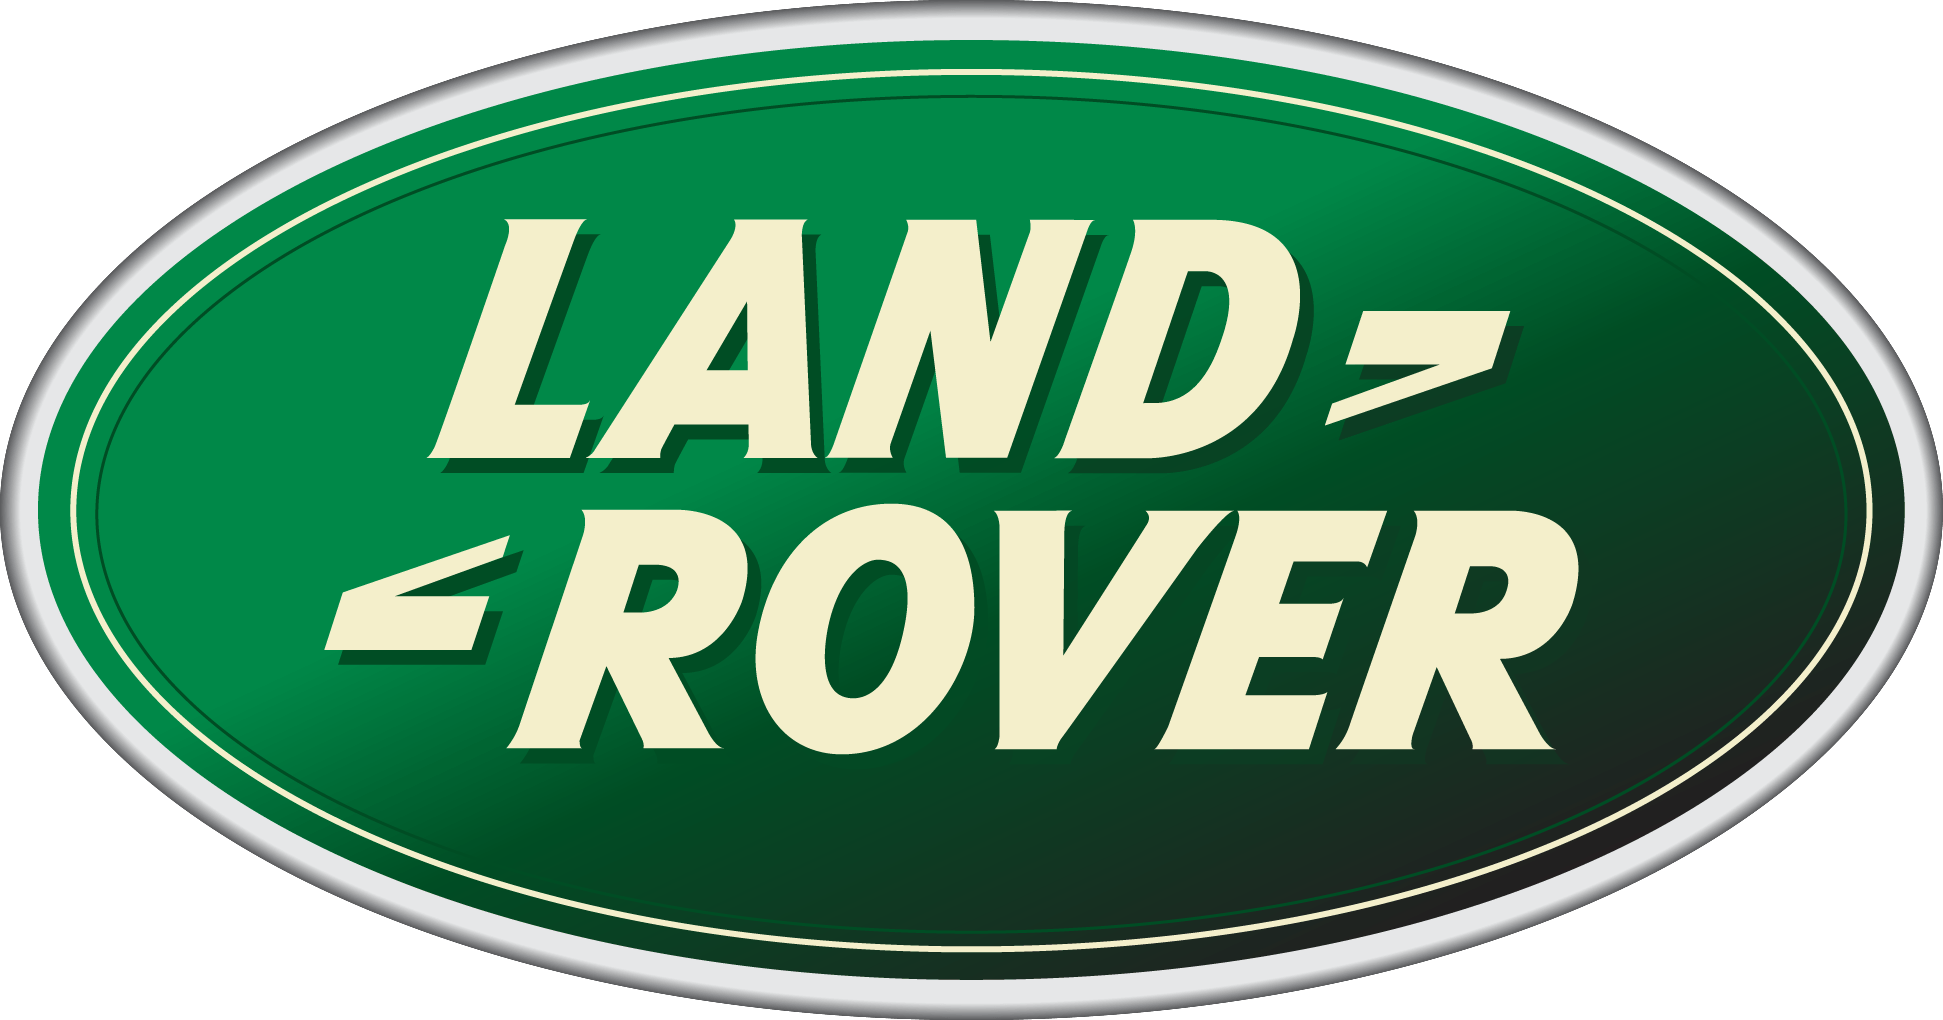 land rover logo vector eps free download logo icons clipart rh freelogovectors net range rover login range rover logo hat